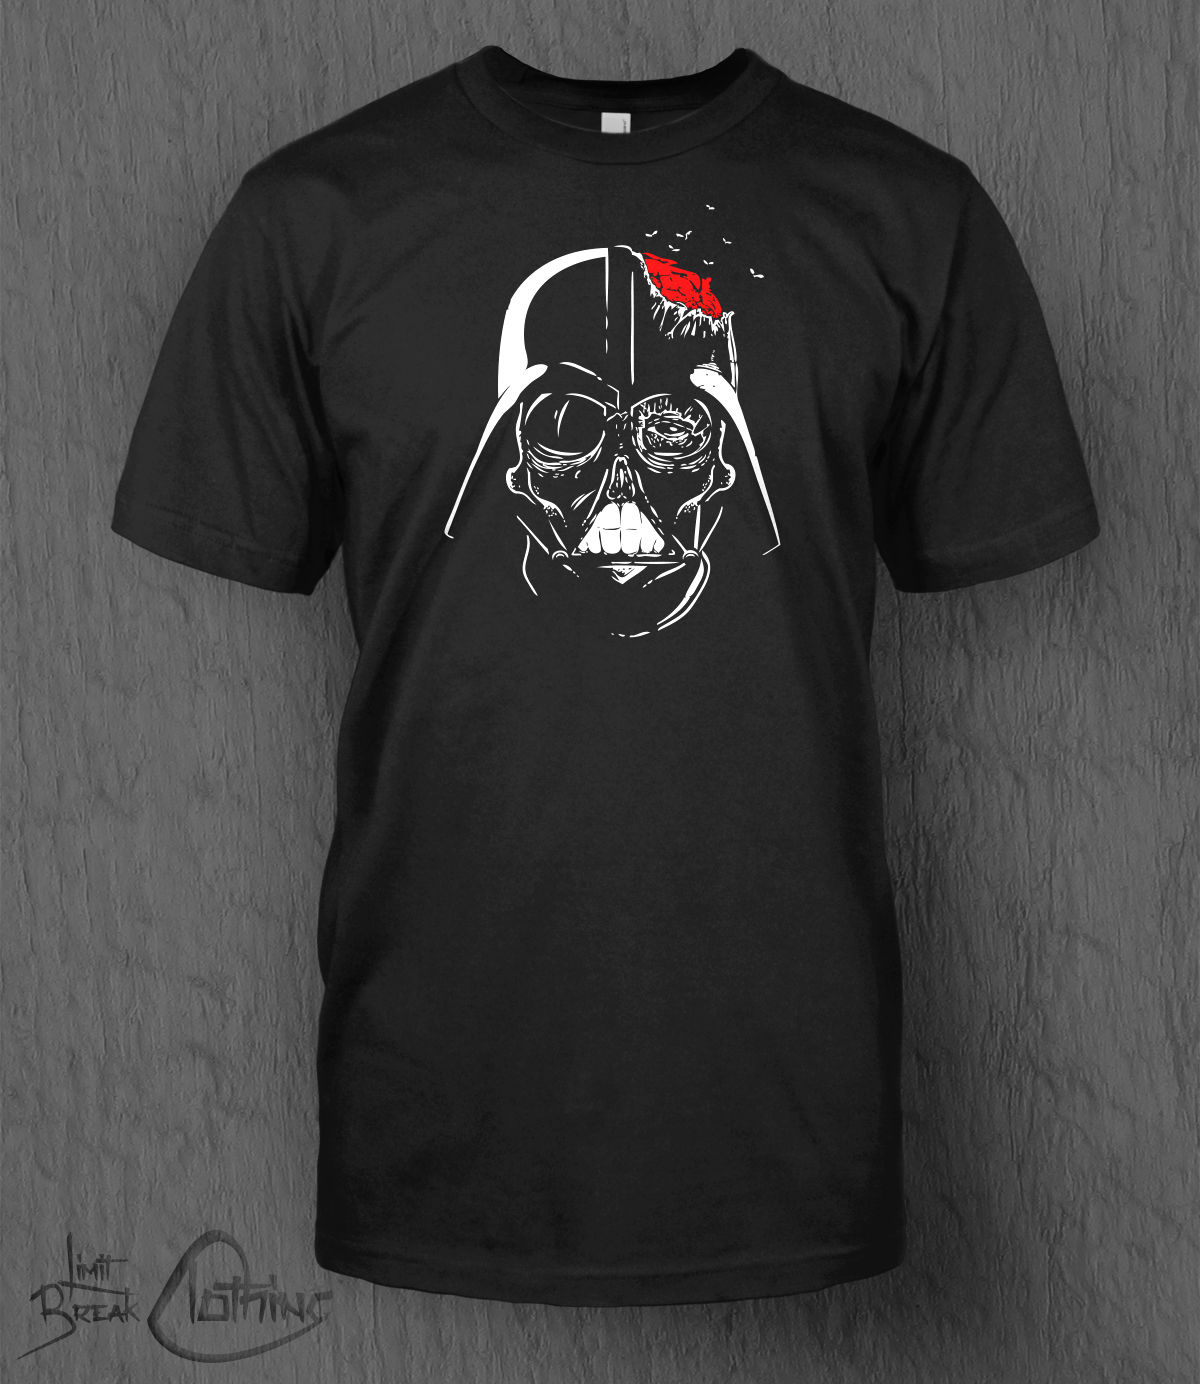 Star Wars T Shirt Zombie Darth Vader MEN 39 S The Force Awakens The Last Jedi Free shipping Harajuku Tops Classic Unique T Shirt in T Shirts from Men 39 s Clothing